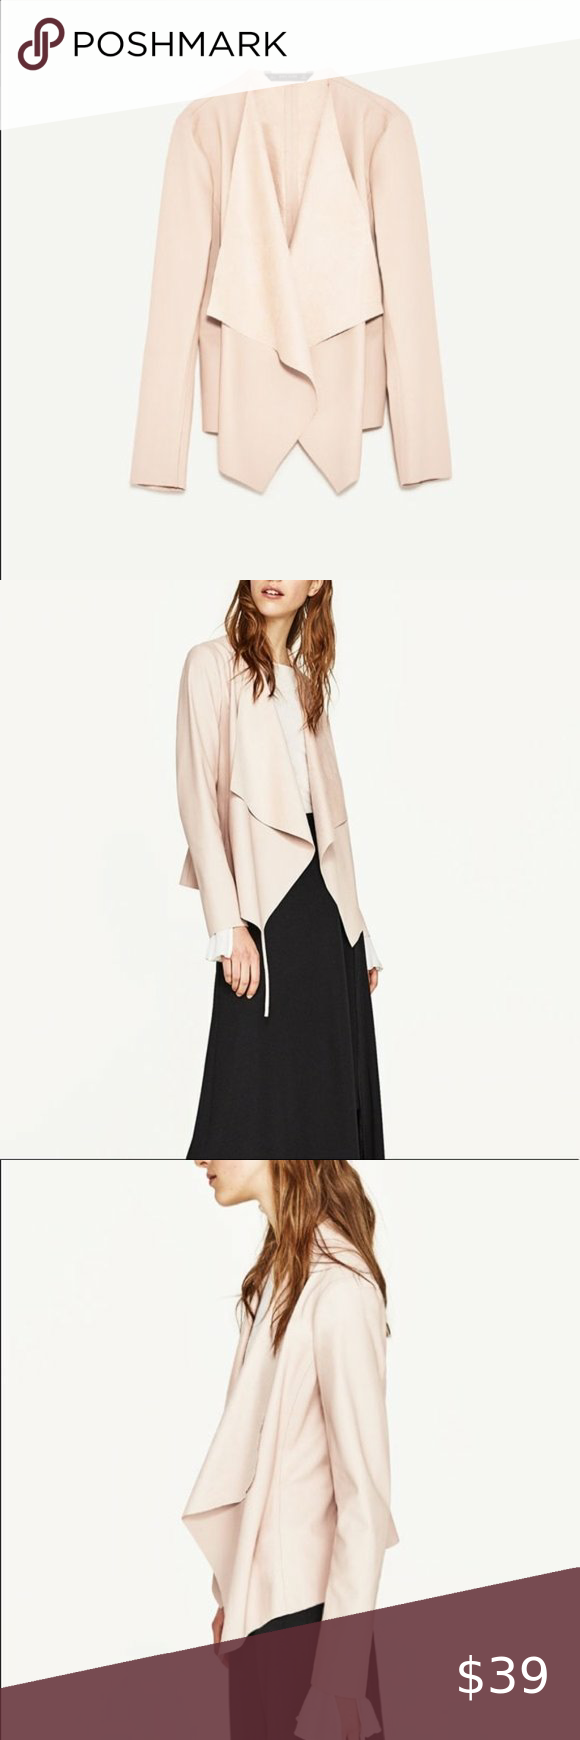 Zara Blush Pink Faux Leather Jacket in 2020 Faux leather